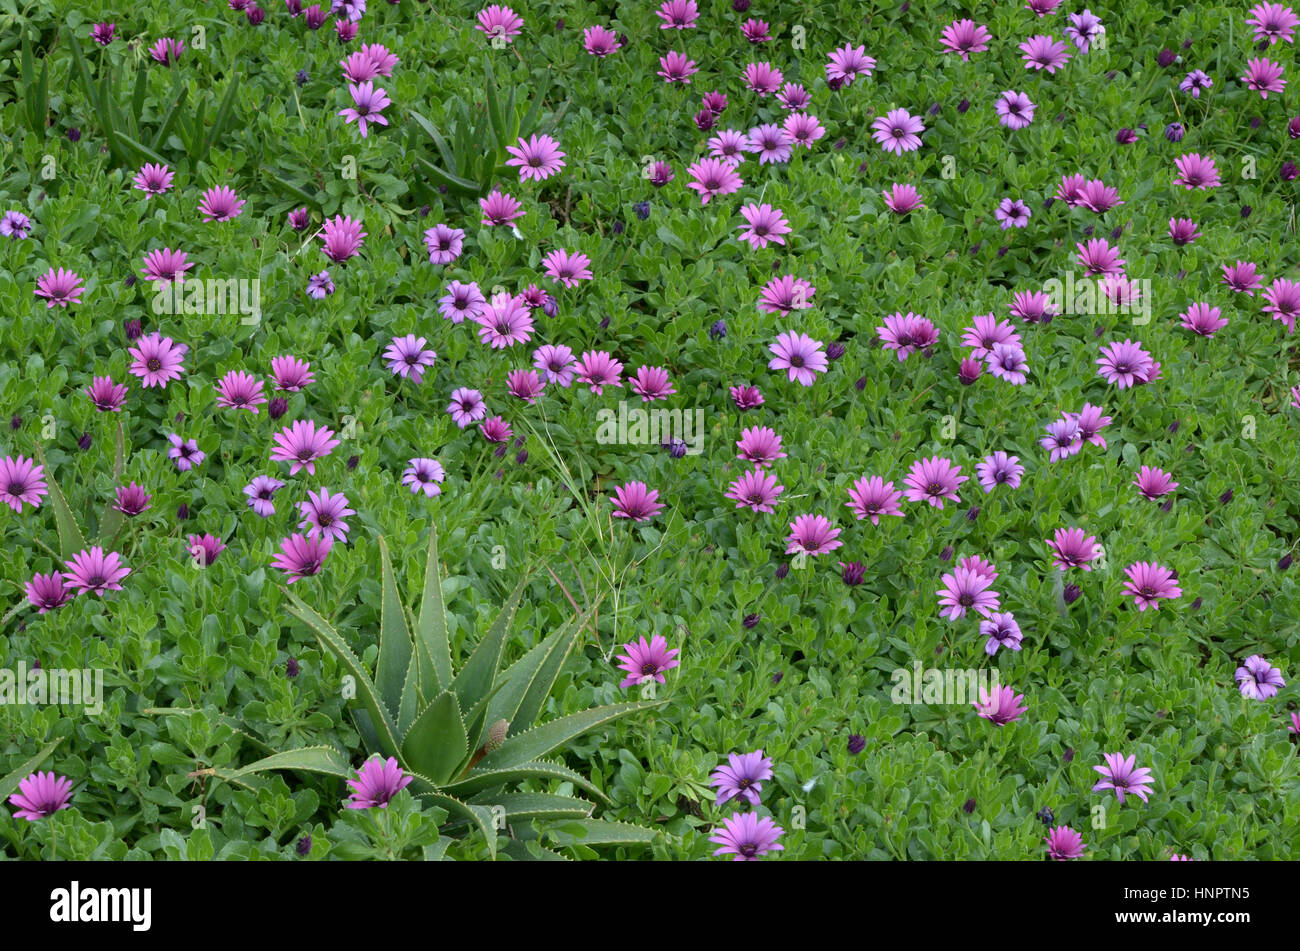 Purple flowers cultivated flowers daisies nature stock photos field of purple flowers amongst green ground cover with single aloe plant stock image izmirmasajfo